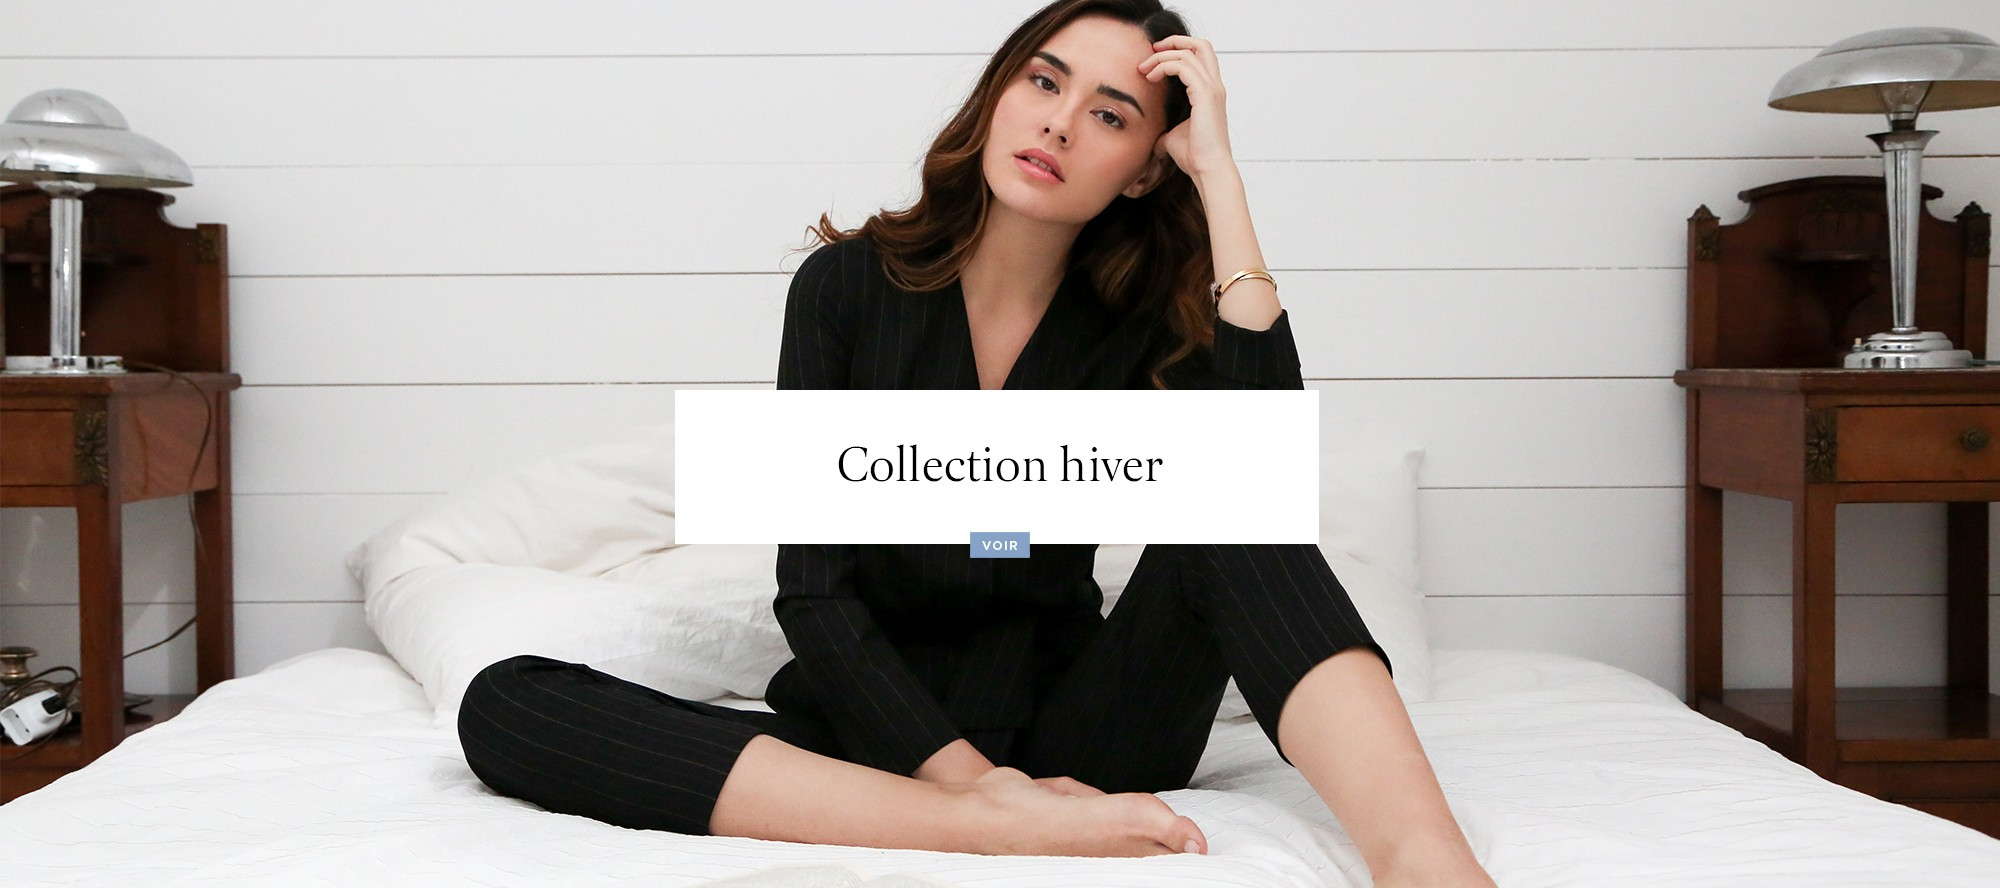 Collection hiver